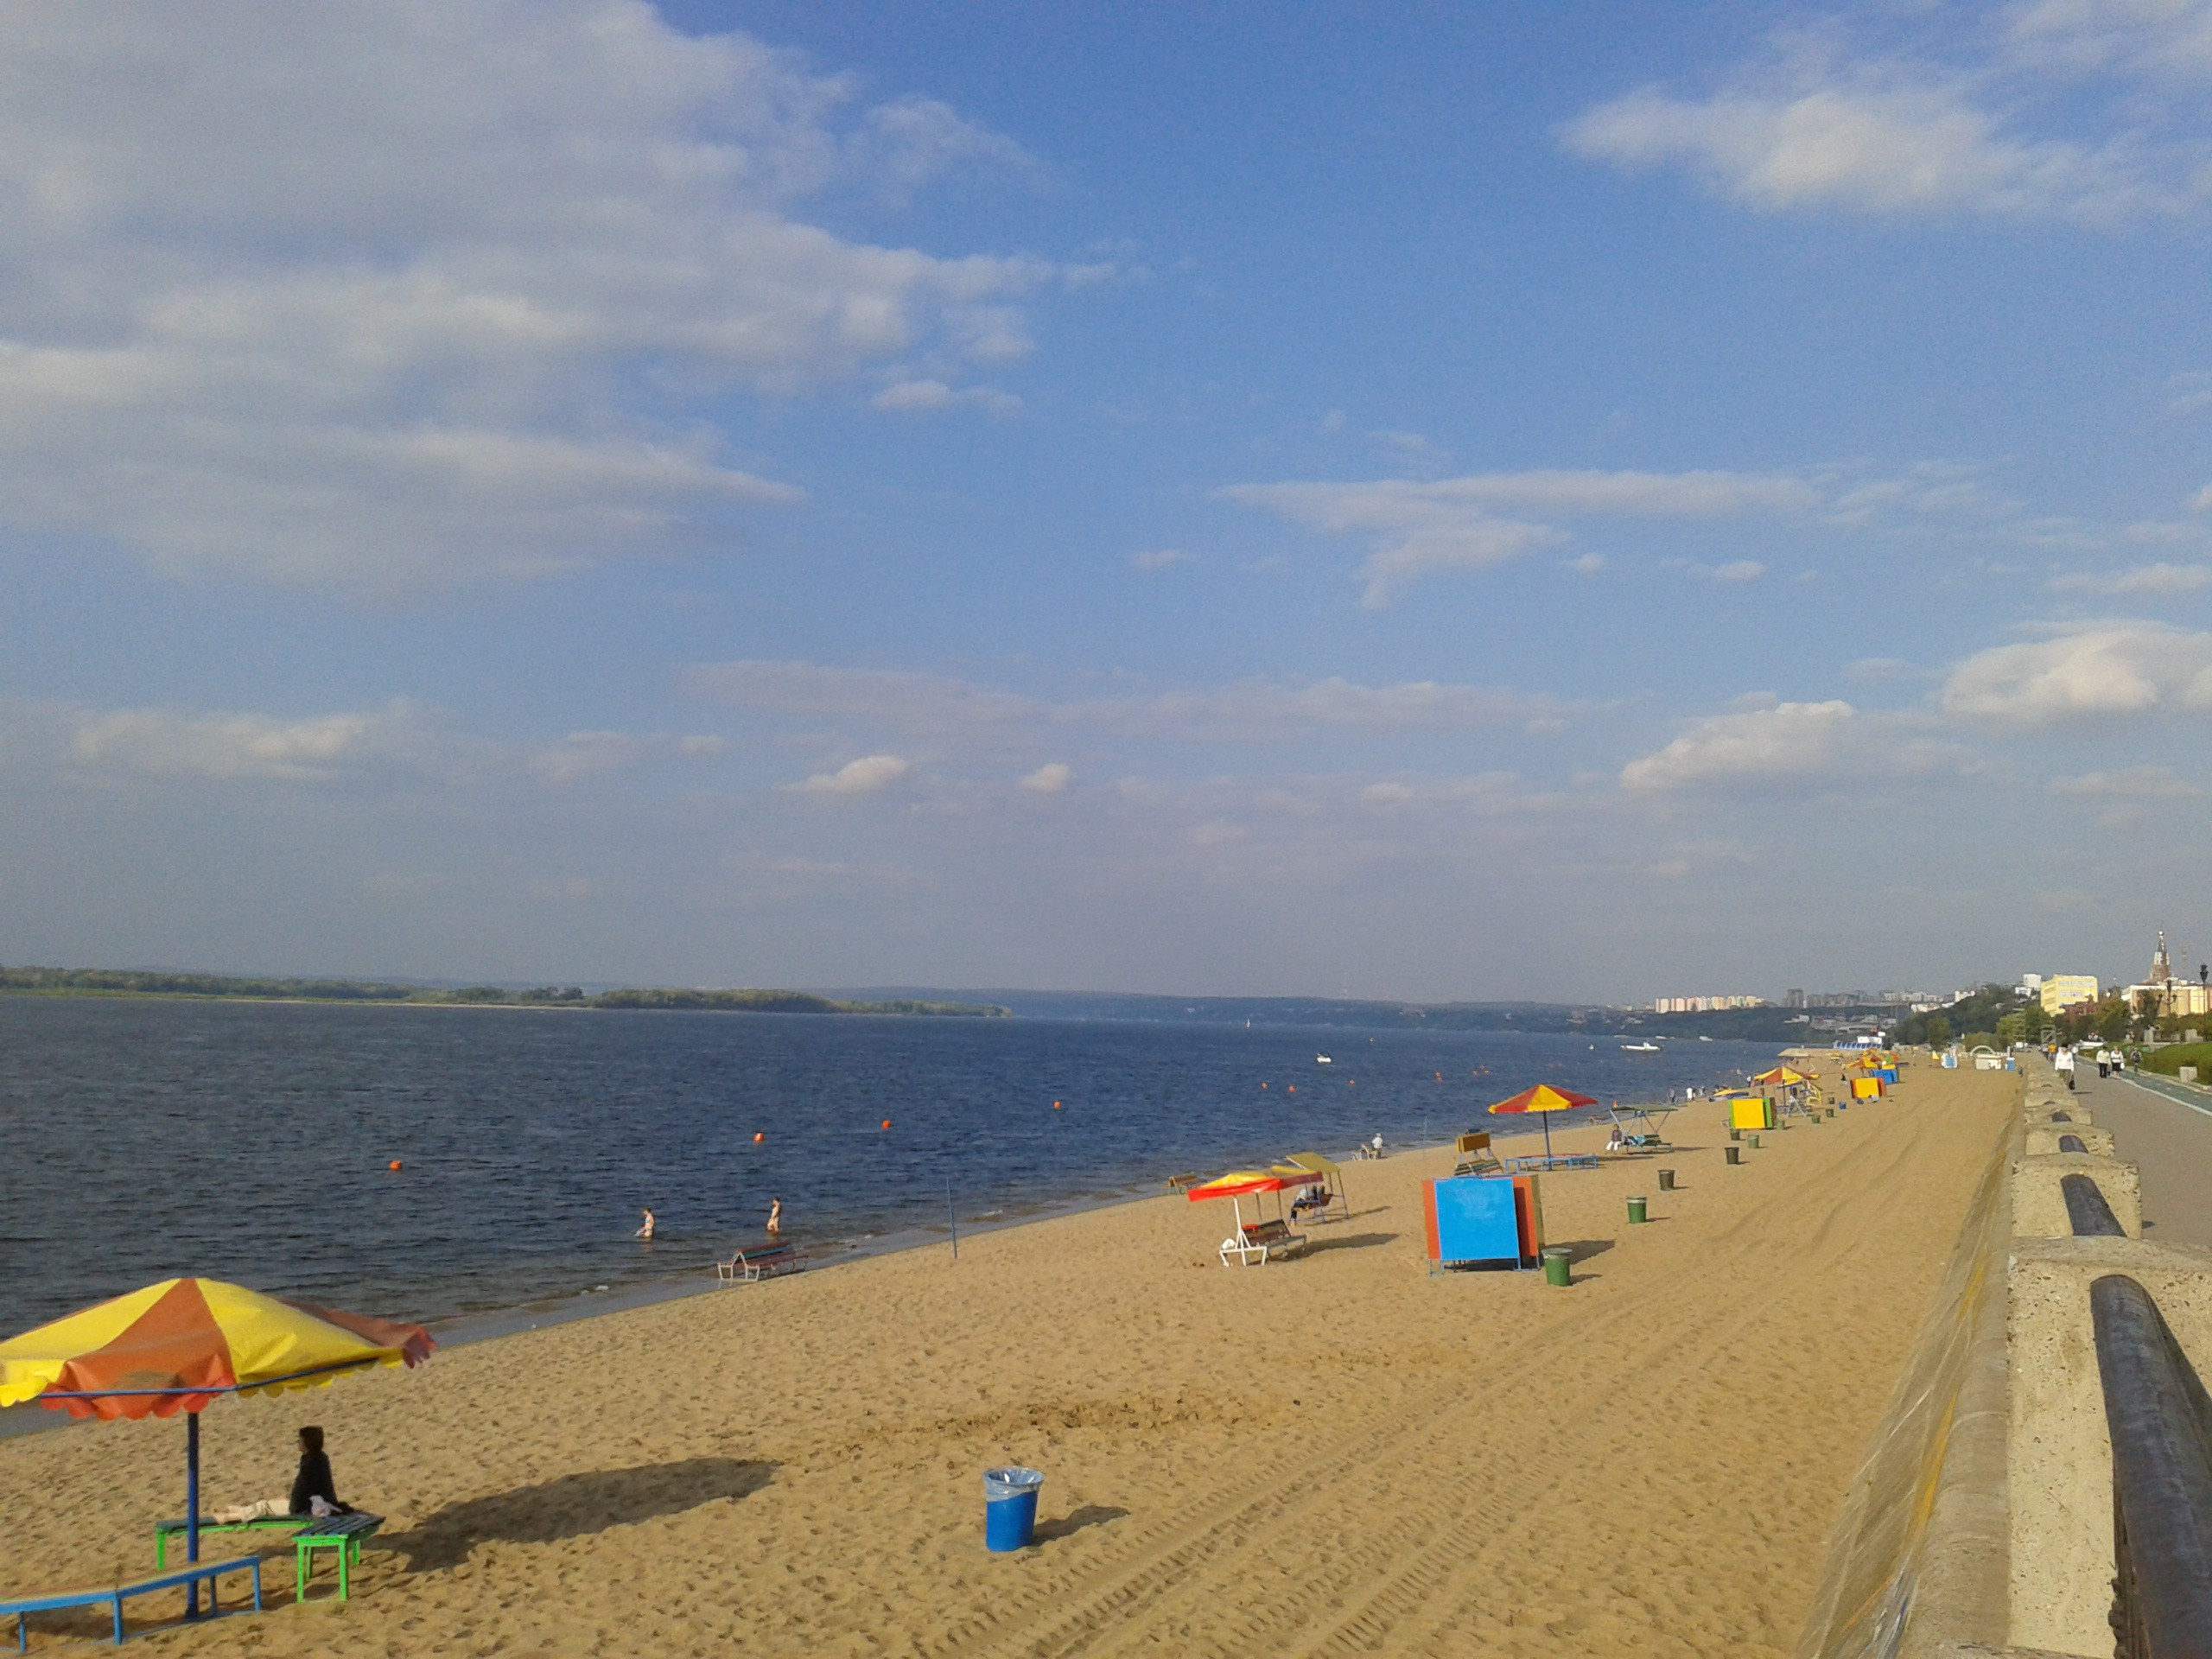 The Zhiguli Sea is a place worth visiting